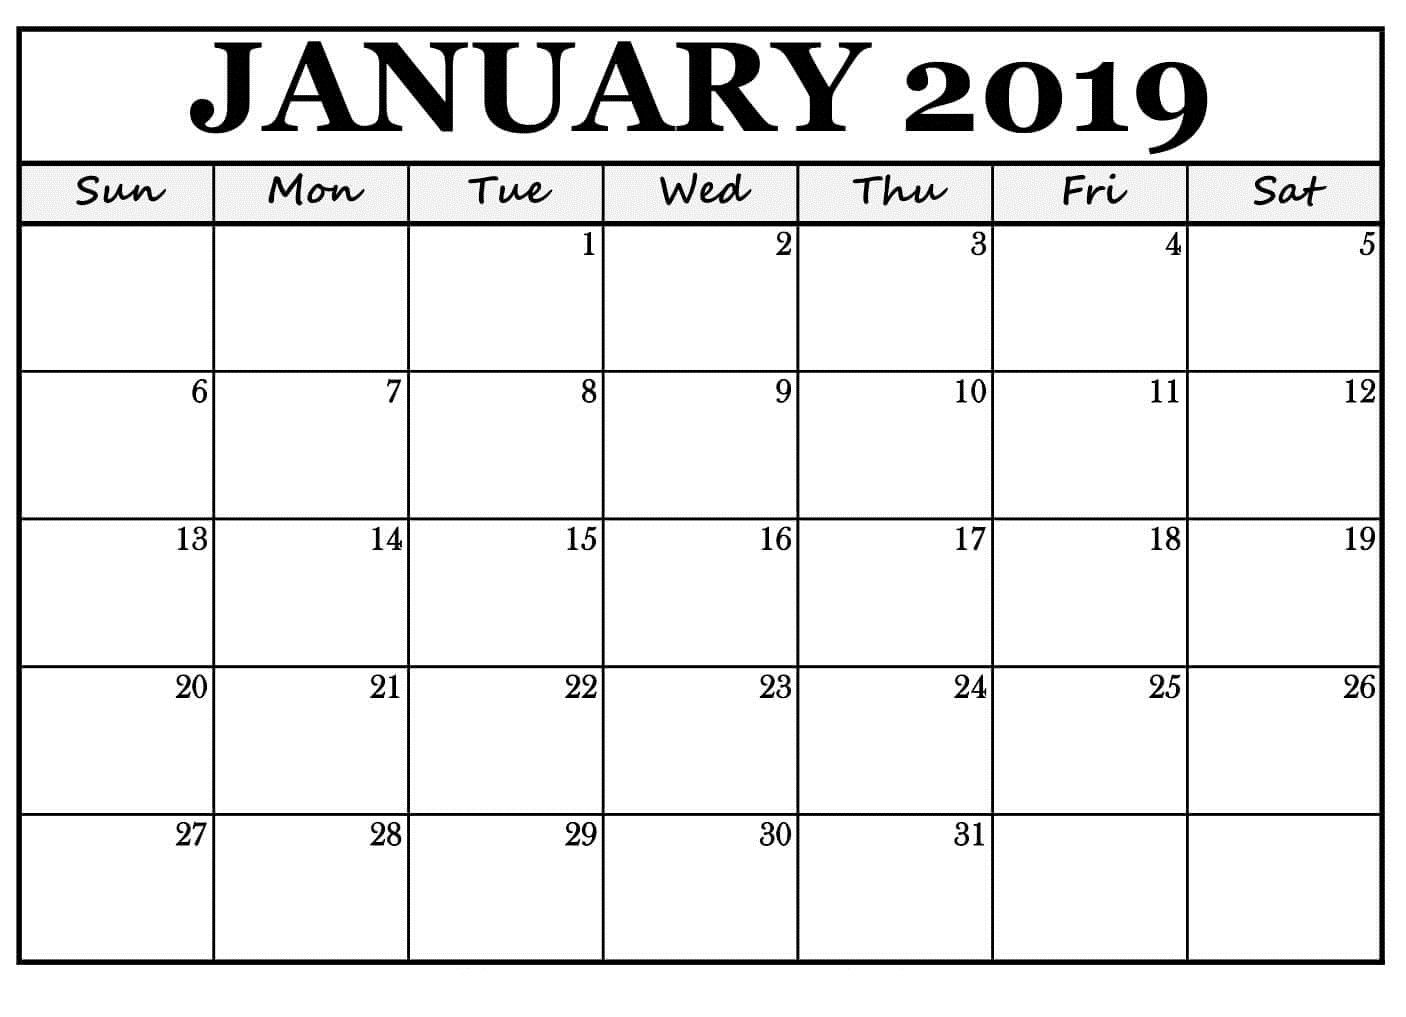 January 2019 Calendar Reminders Free Template | January 2019 inside Free Printable 2020 Waterproof Calendars